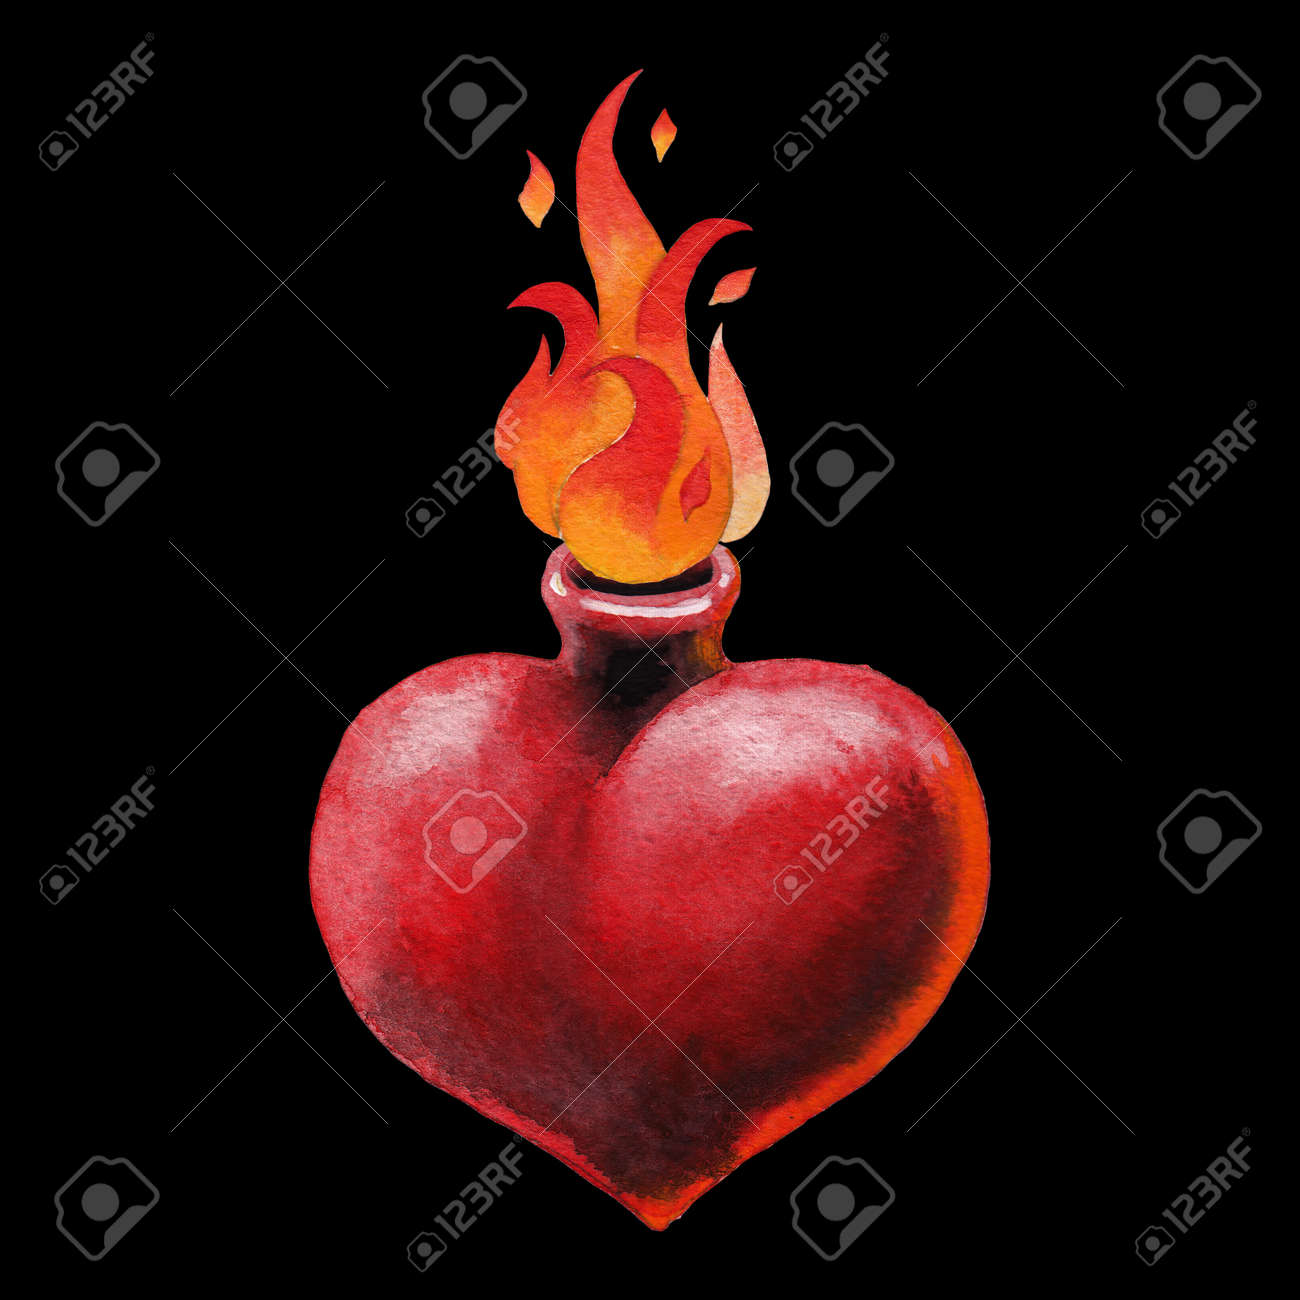 1954ee0f8b3b Stock Photo - Watercolor flaming heart